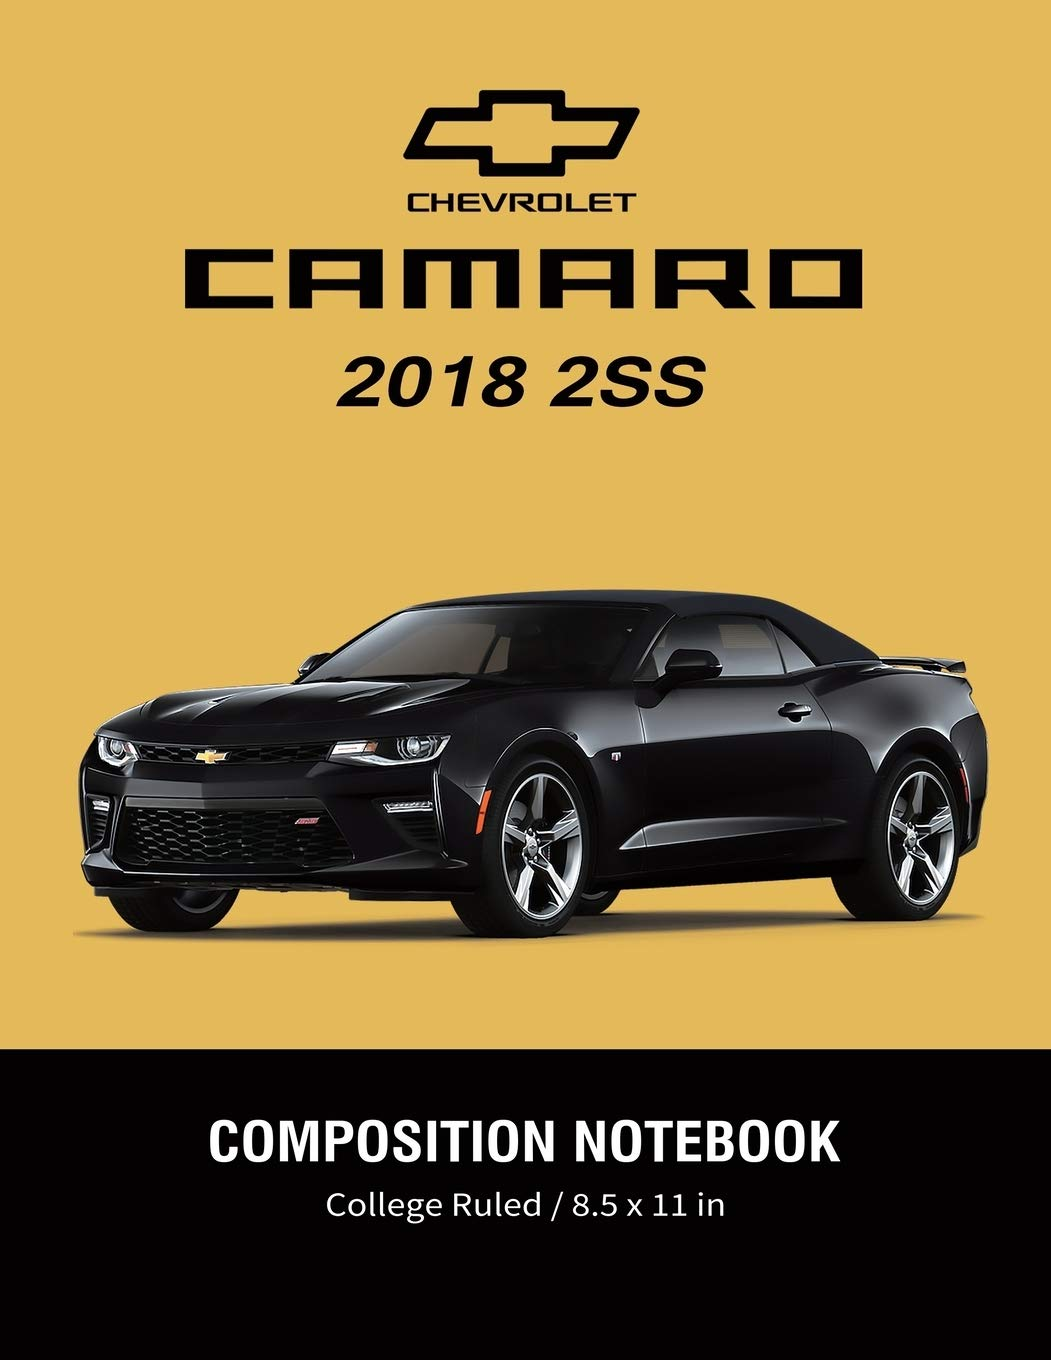 Chevrolet Camaro 2018 2ss Composition Notebook College Ruled 8 5 X 11 In American Muscle Cars Supercars Notebook Lined Composition Book Diary Journal Notebook Amazon De Supercar Sam Fremdsprachige Bücher